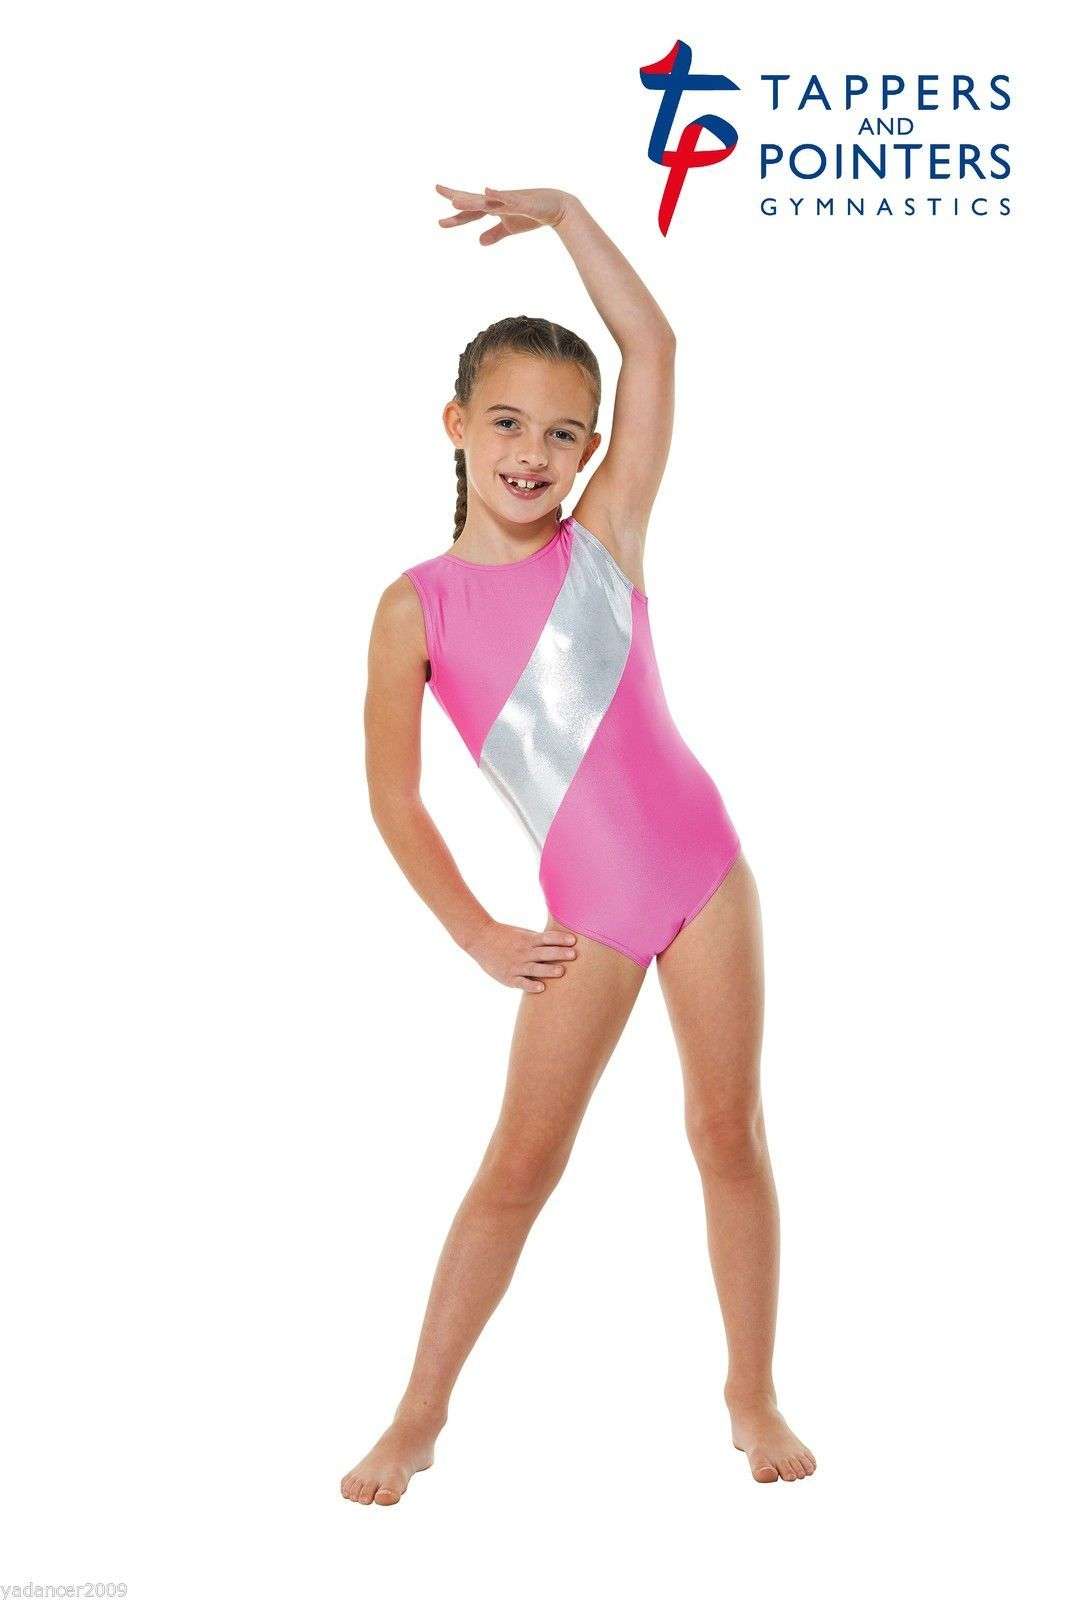 fe3da2f0e903 tappers-and-pointers-gymnastics-sleeveless-tank-leotard-pink-gym -5-size-adult-medium-uk-10-12-size-4-4222-p.jpg